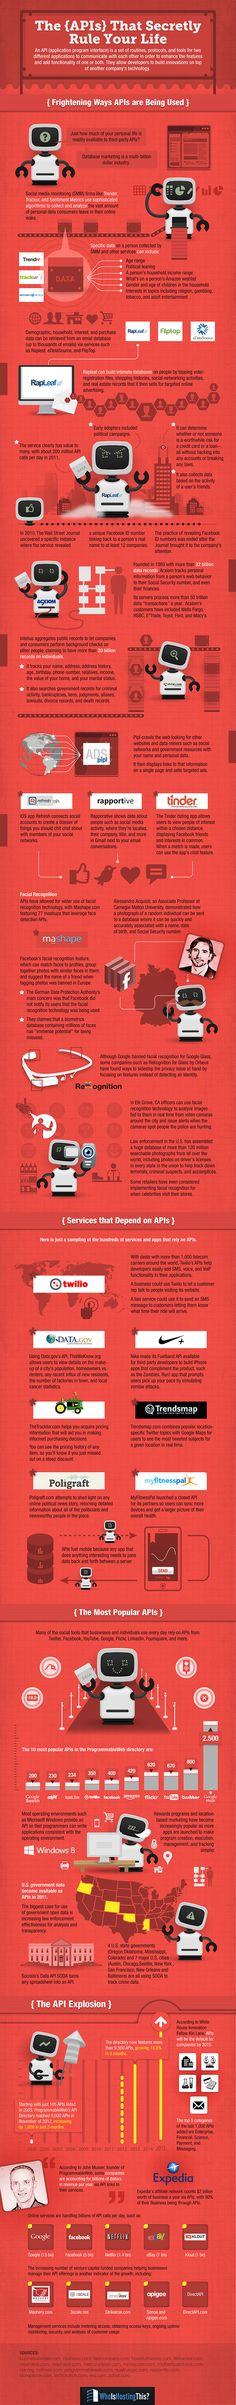 Infographic: The APIs That Secretly Rule Your Life